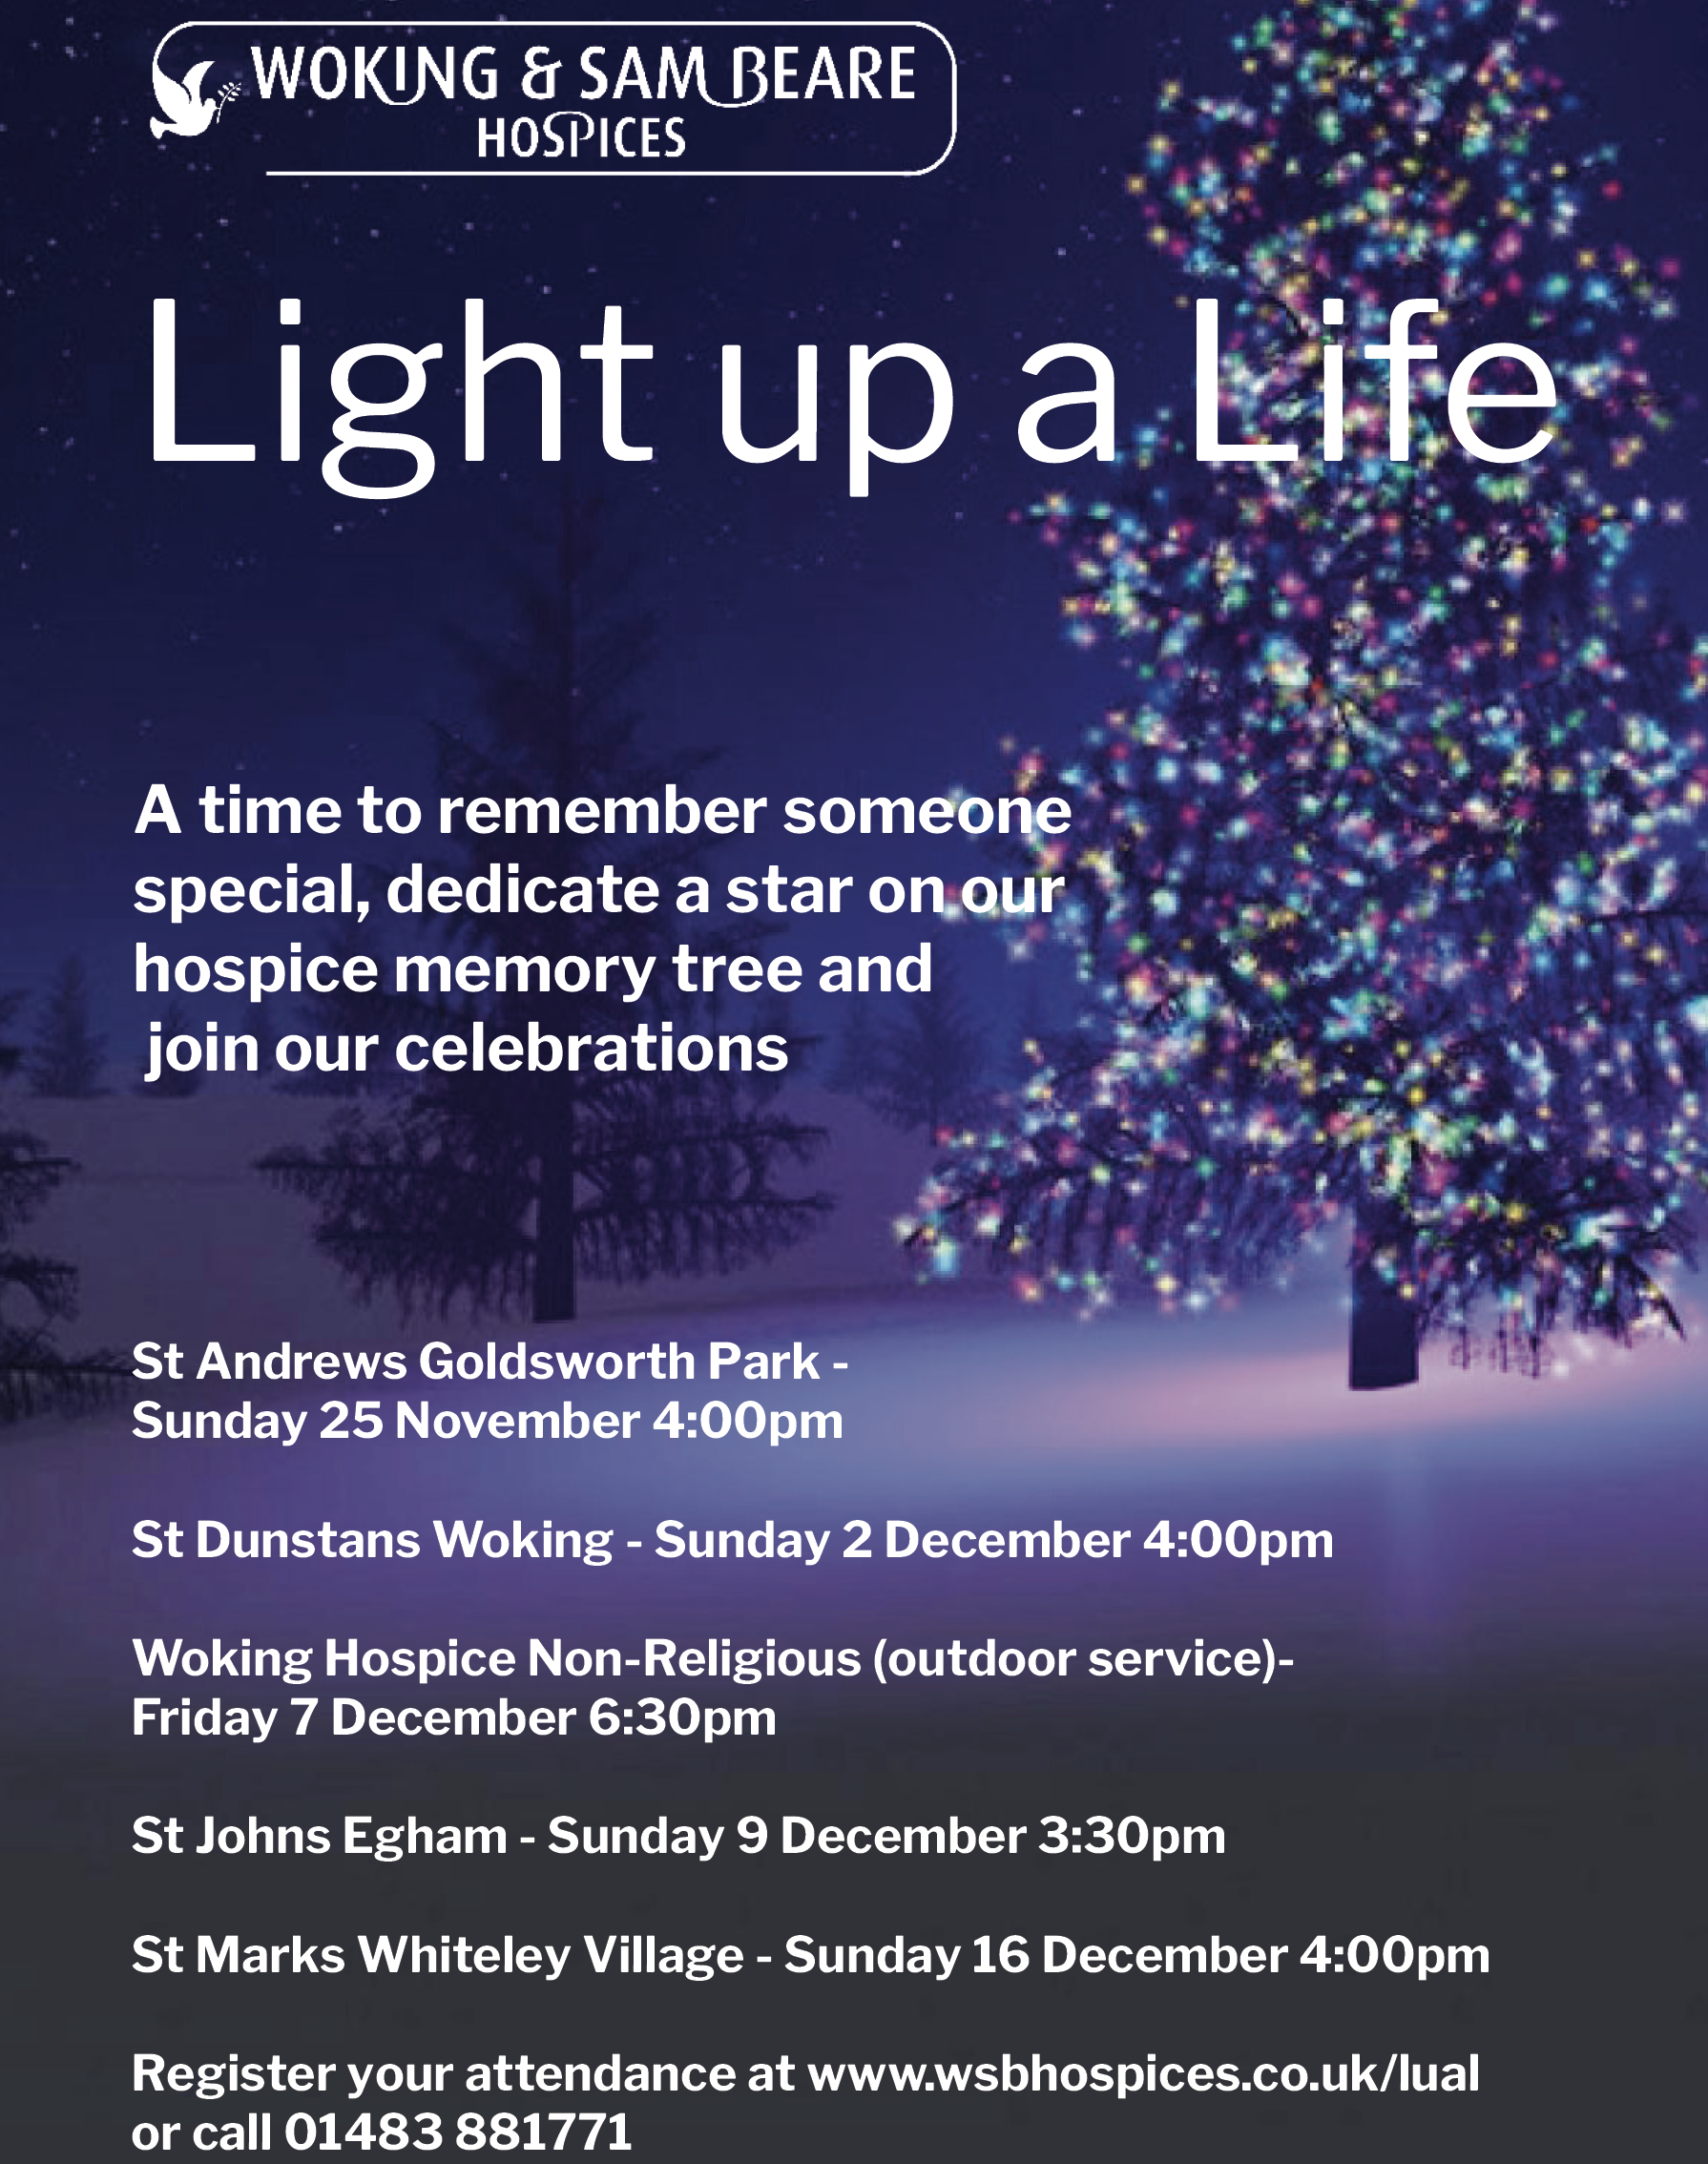 'Light Up A Life' with Woking & Sam Beare Hospices